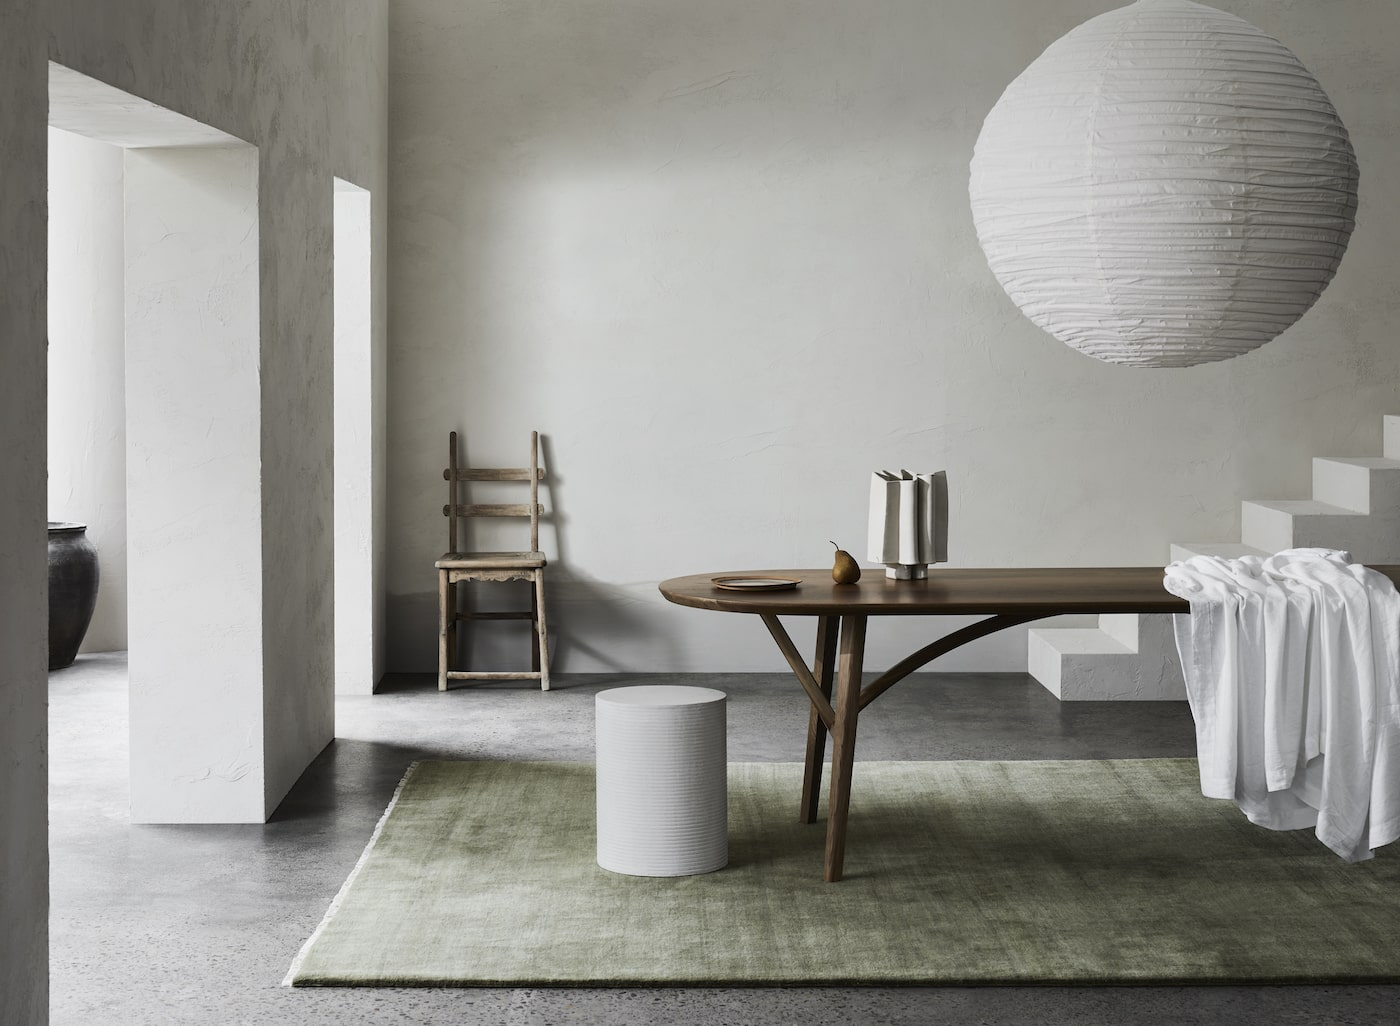 Green rug in dining room under dining table